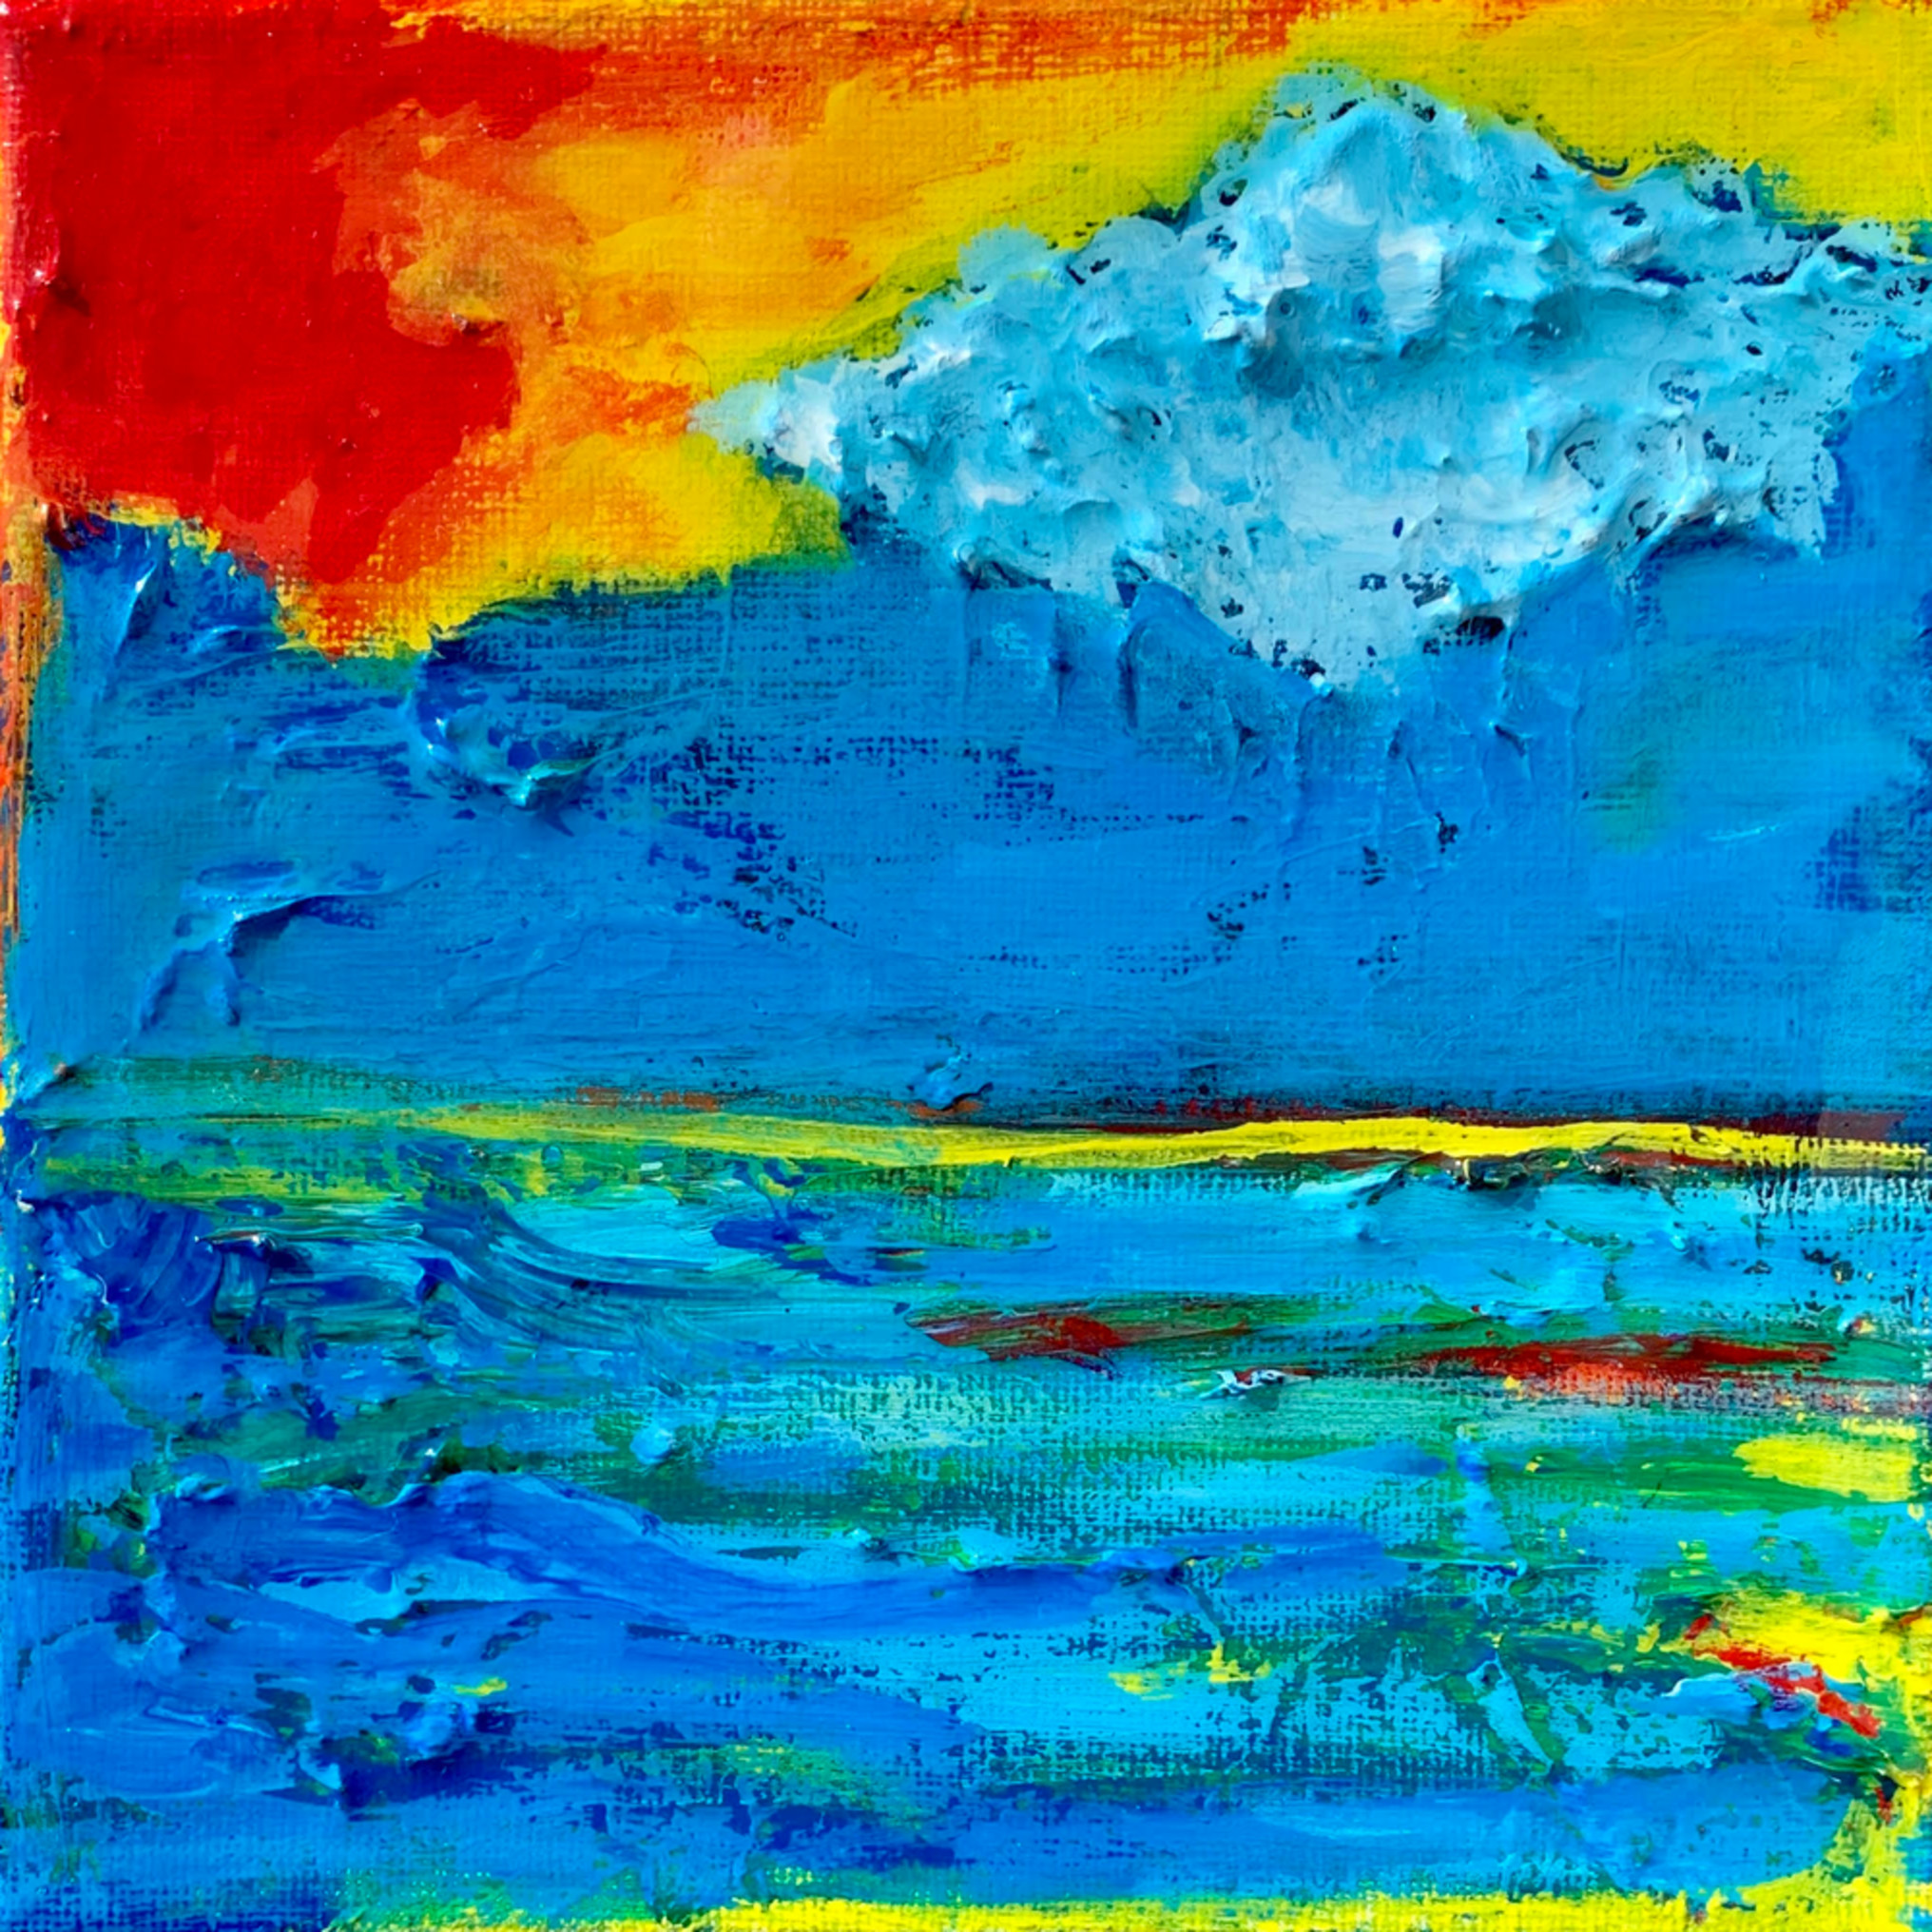 Cloud over the ocean painting artist paul zepeda a29nyn